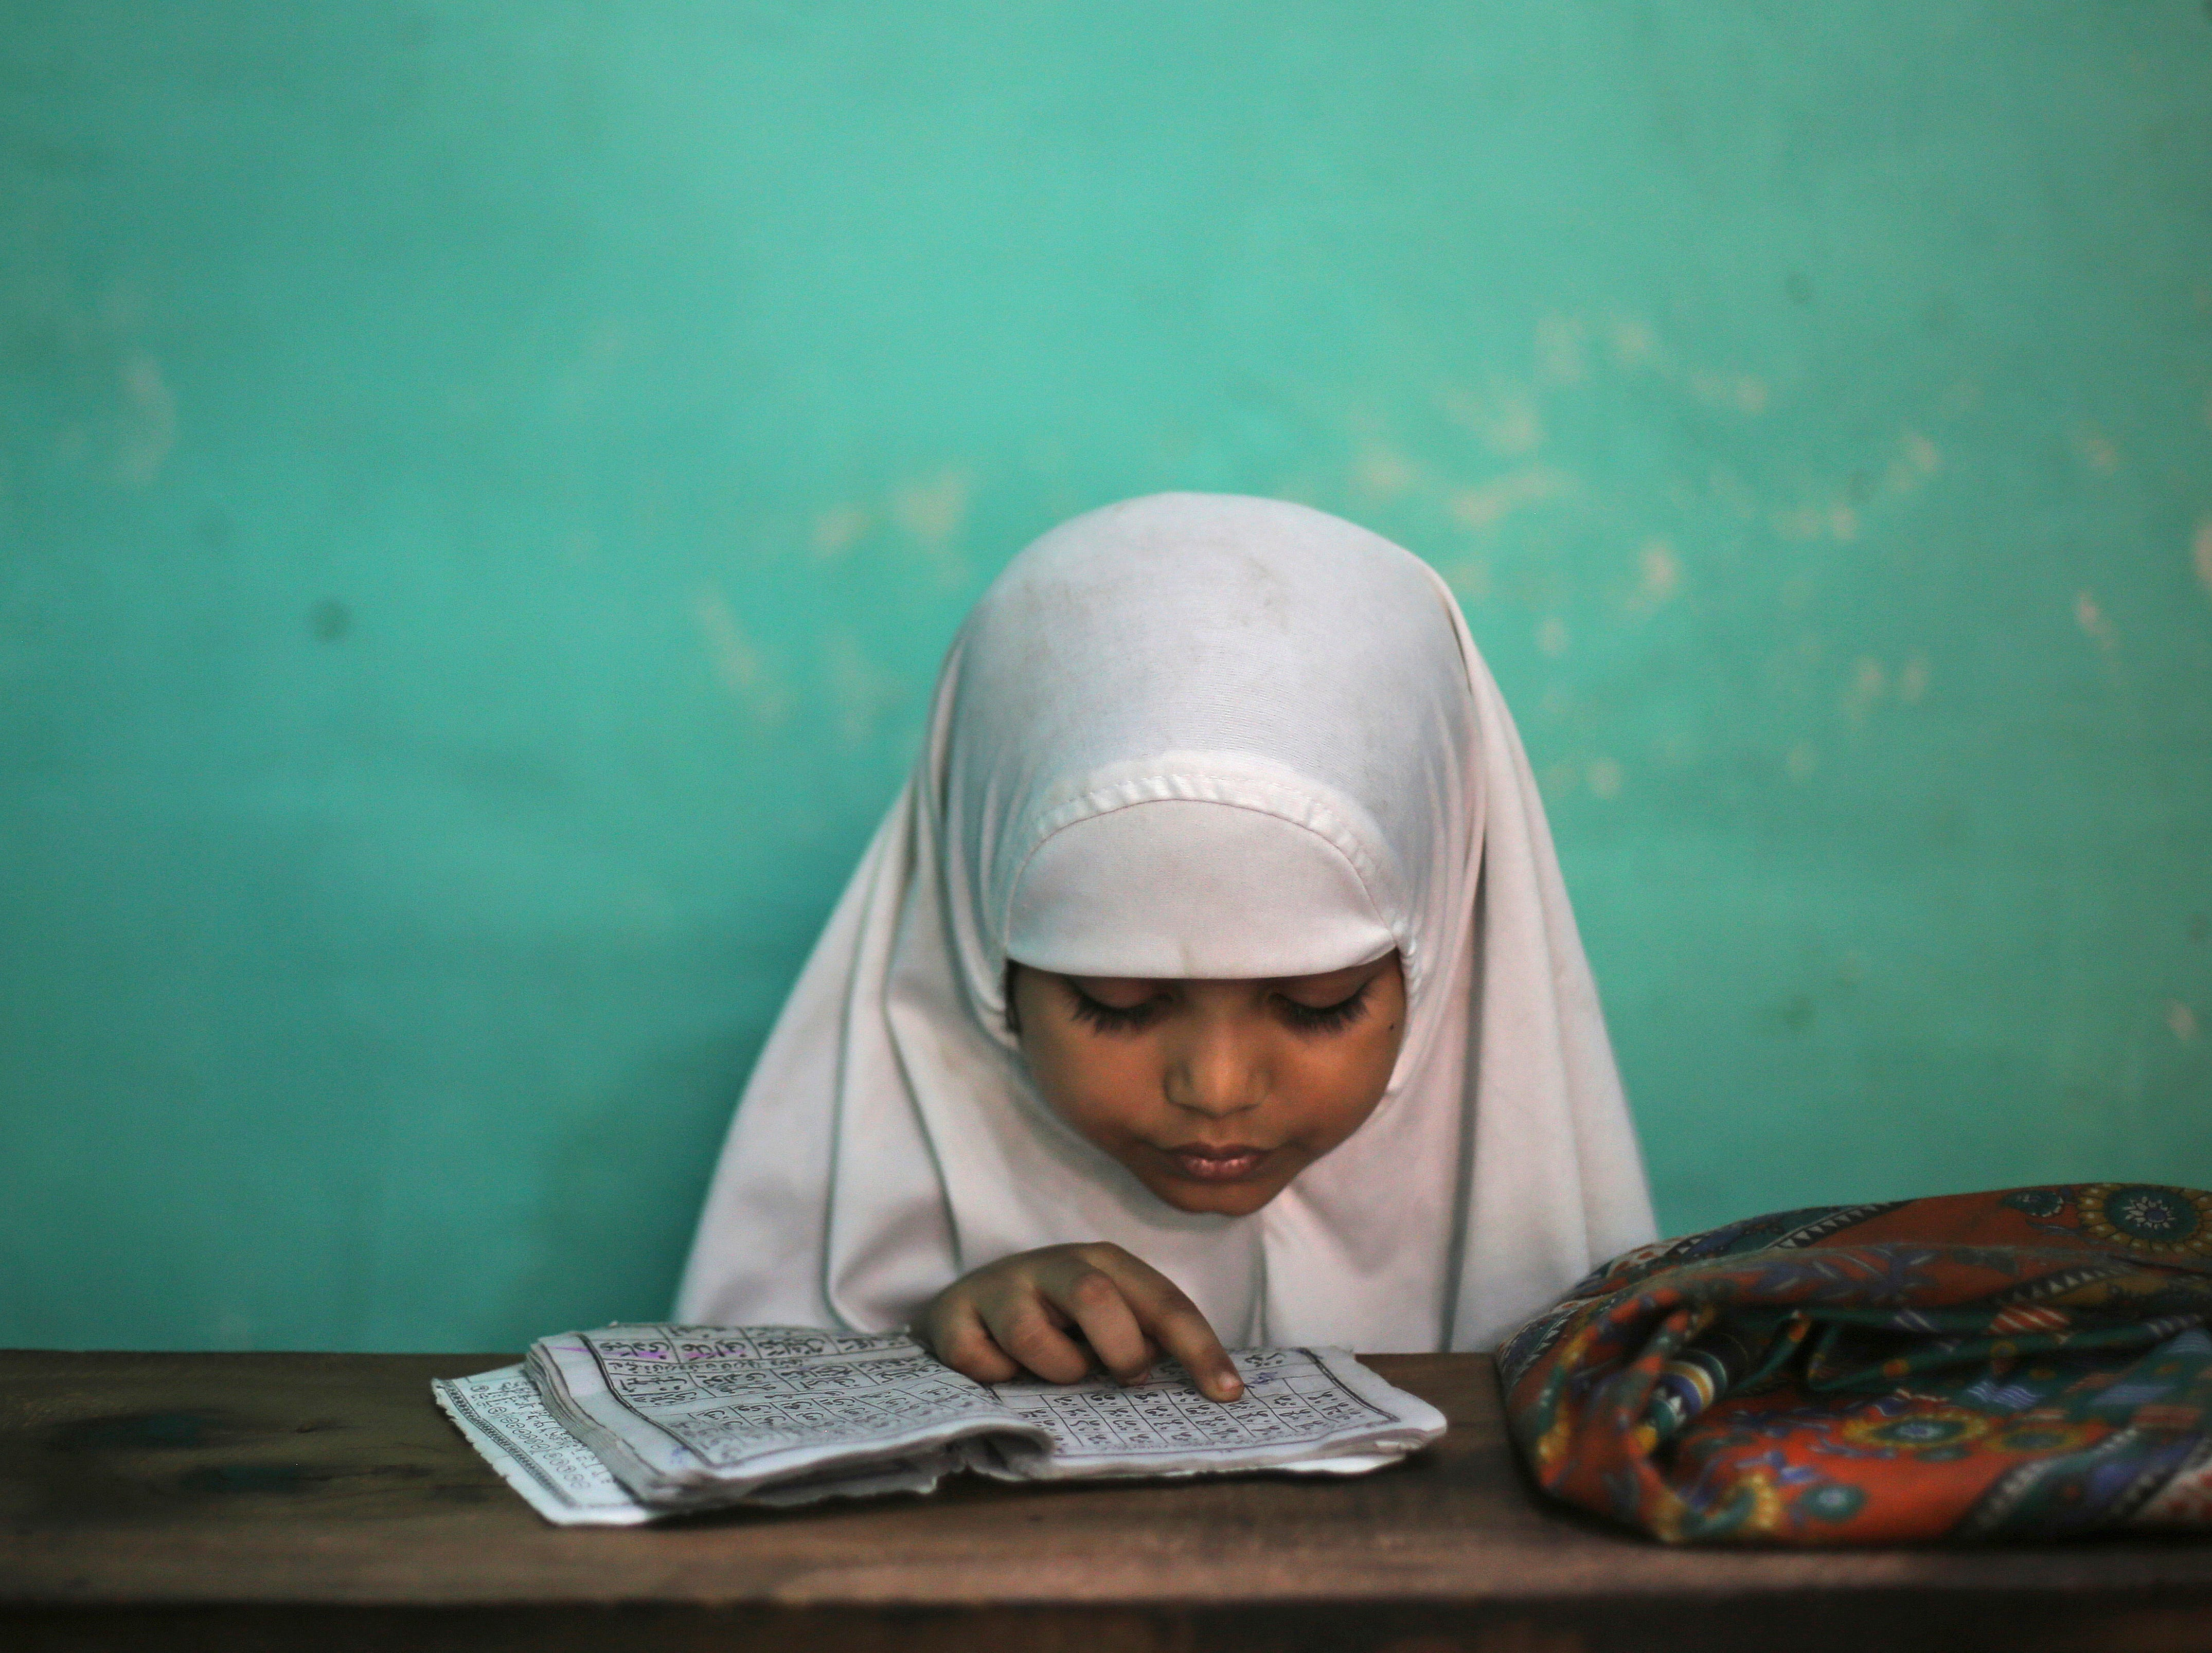 May 22, 2018: A young Indian Muslim girl learns to read the Quran at a madrasa during the holy Muslim month of Ramadan in New Delhi, India.